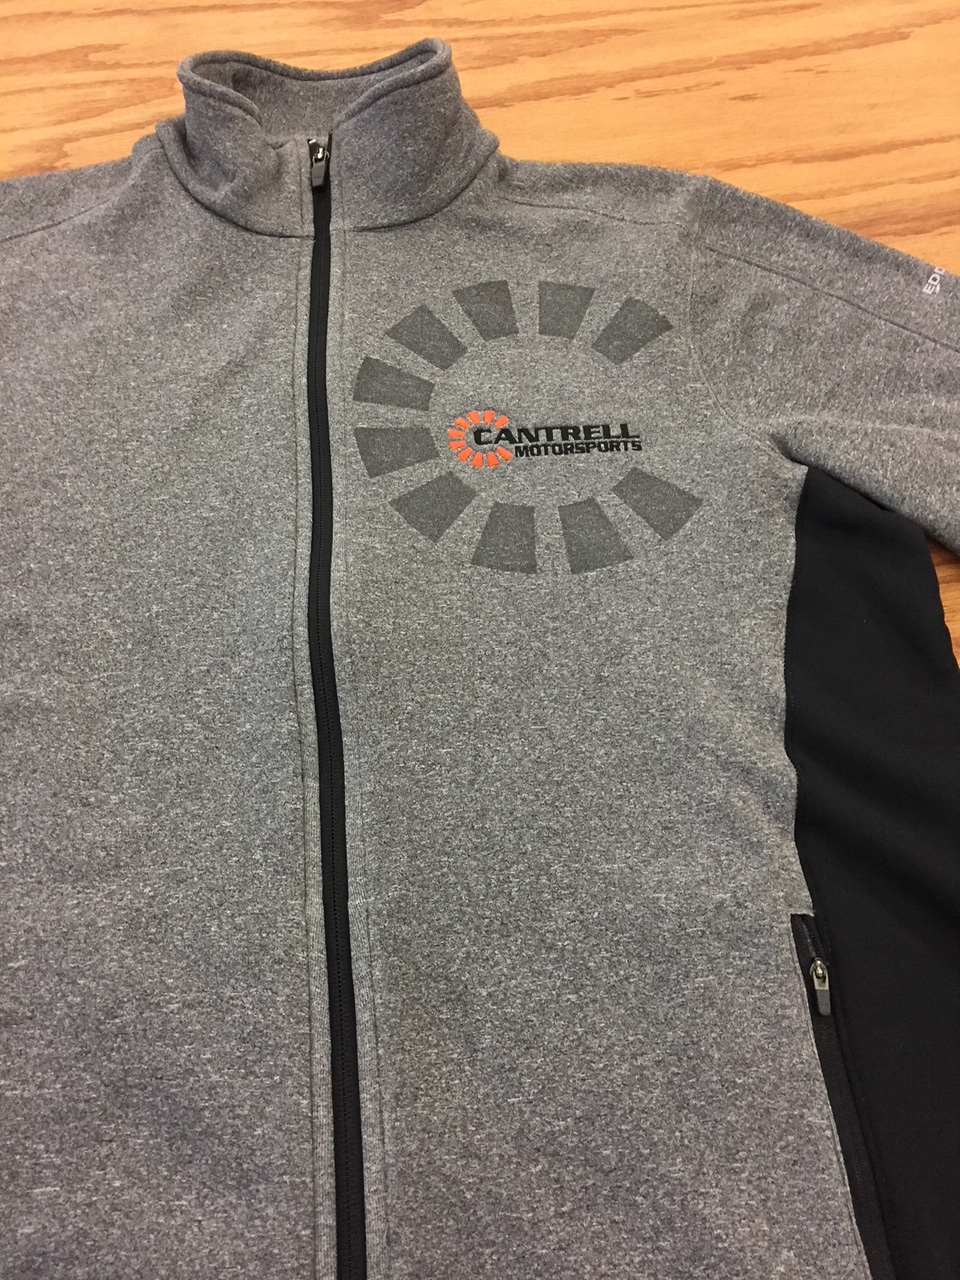 logounltd_laser_etching_embroidery_screen_printing_corporate_apparel_uniform_custom_tshirts_uniforms_dye_sublimation_kirkland_bellevue_seattle_redmond_branded_merchandise_promotional_products_logo_untd (80).JPG